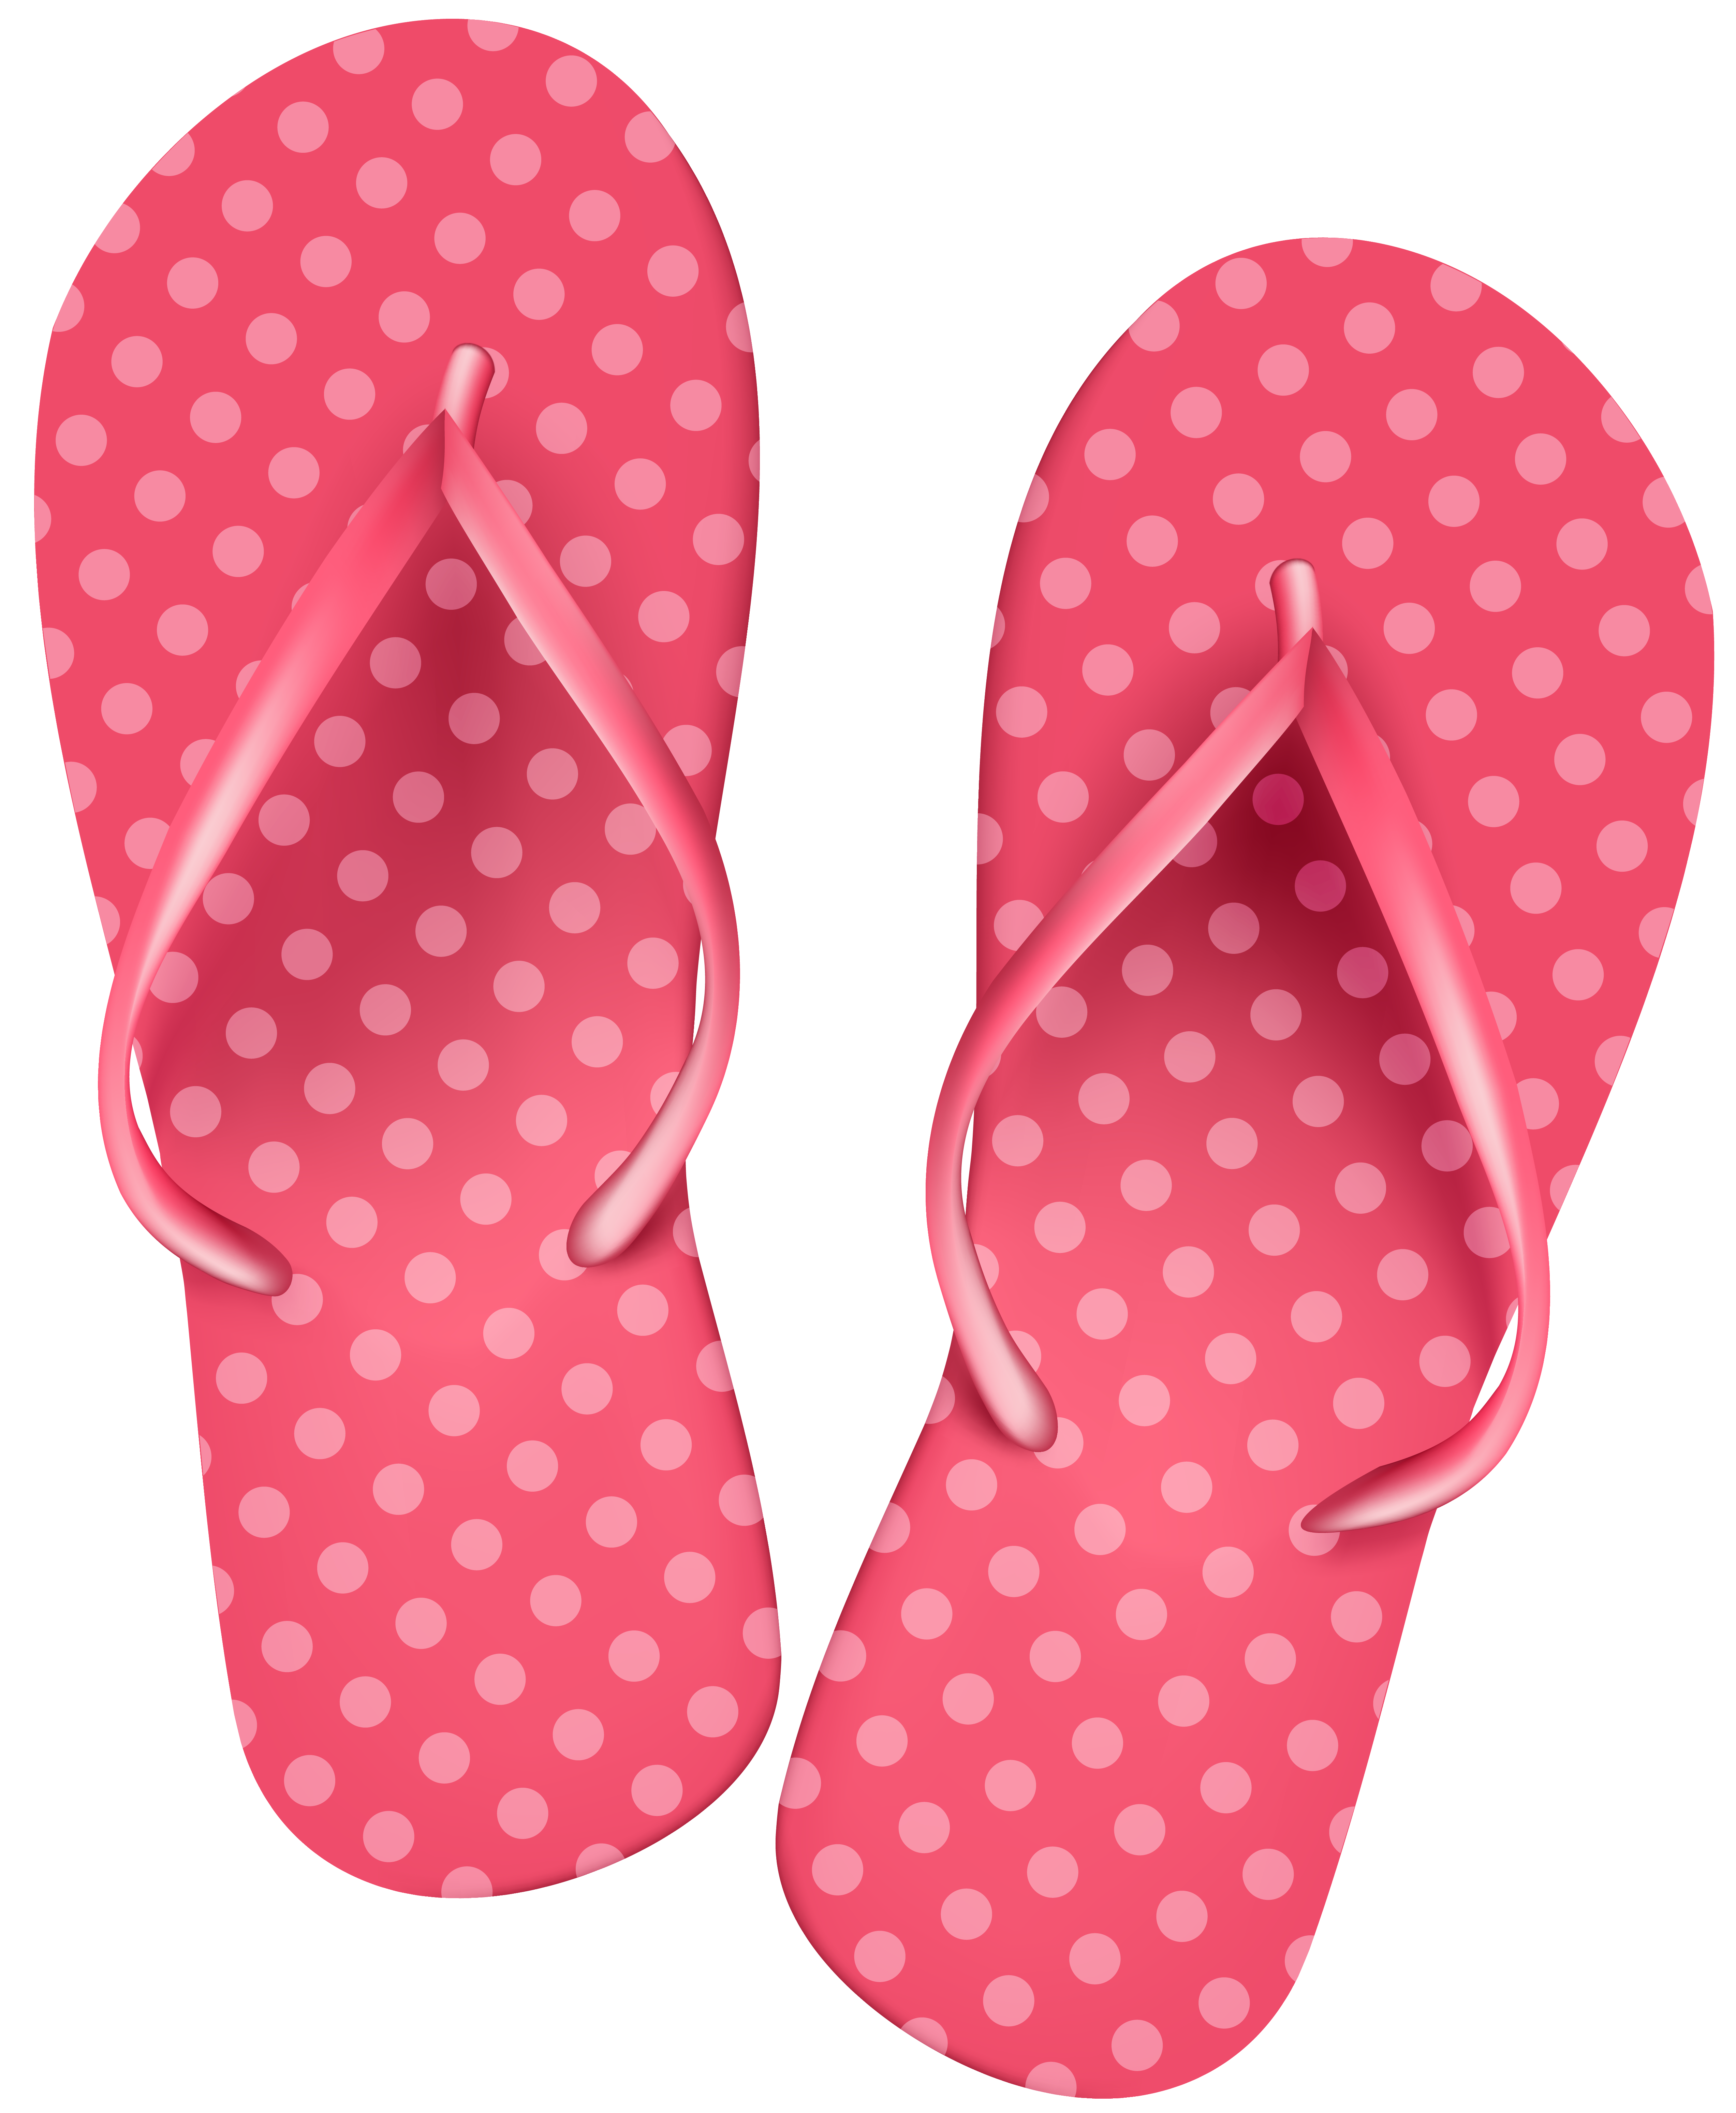 Transparent background clip art flip flop clipart clipart library Pink Flip Flops PNG Clip Art Image | Gallery Yopriceville ... clipart library